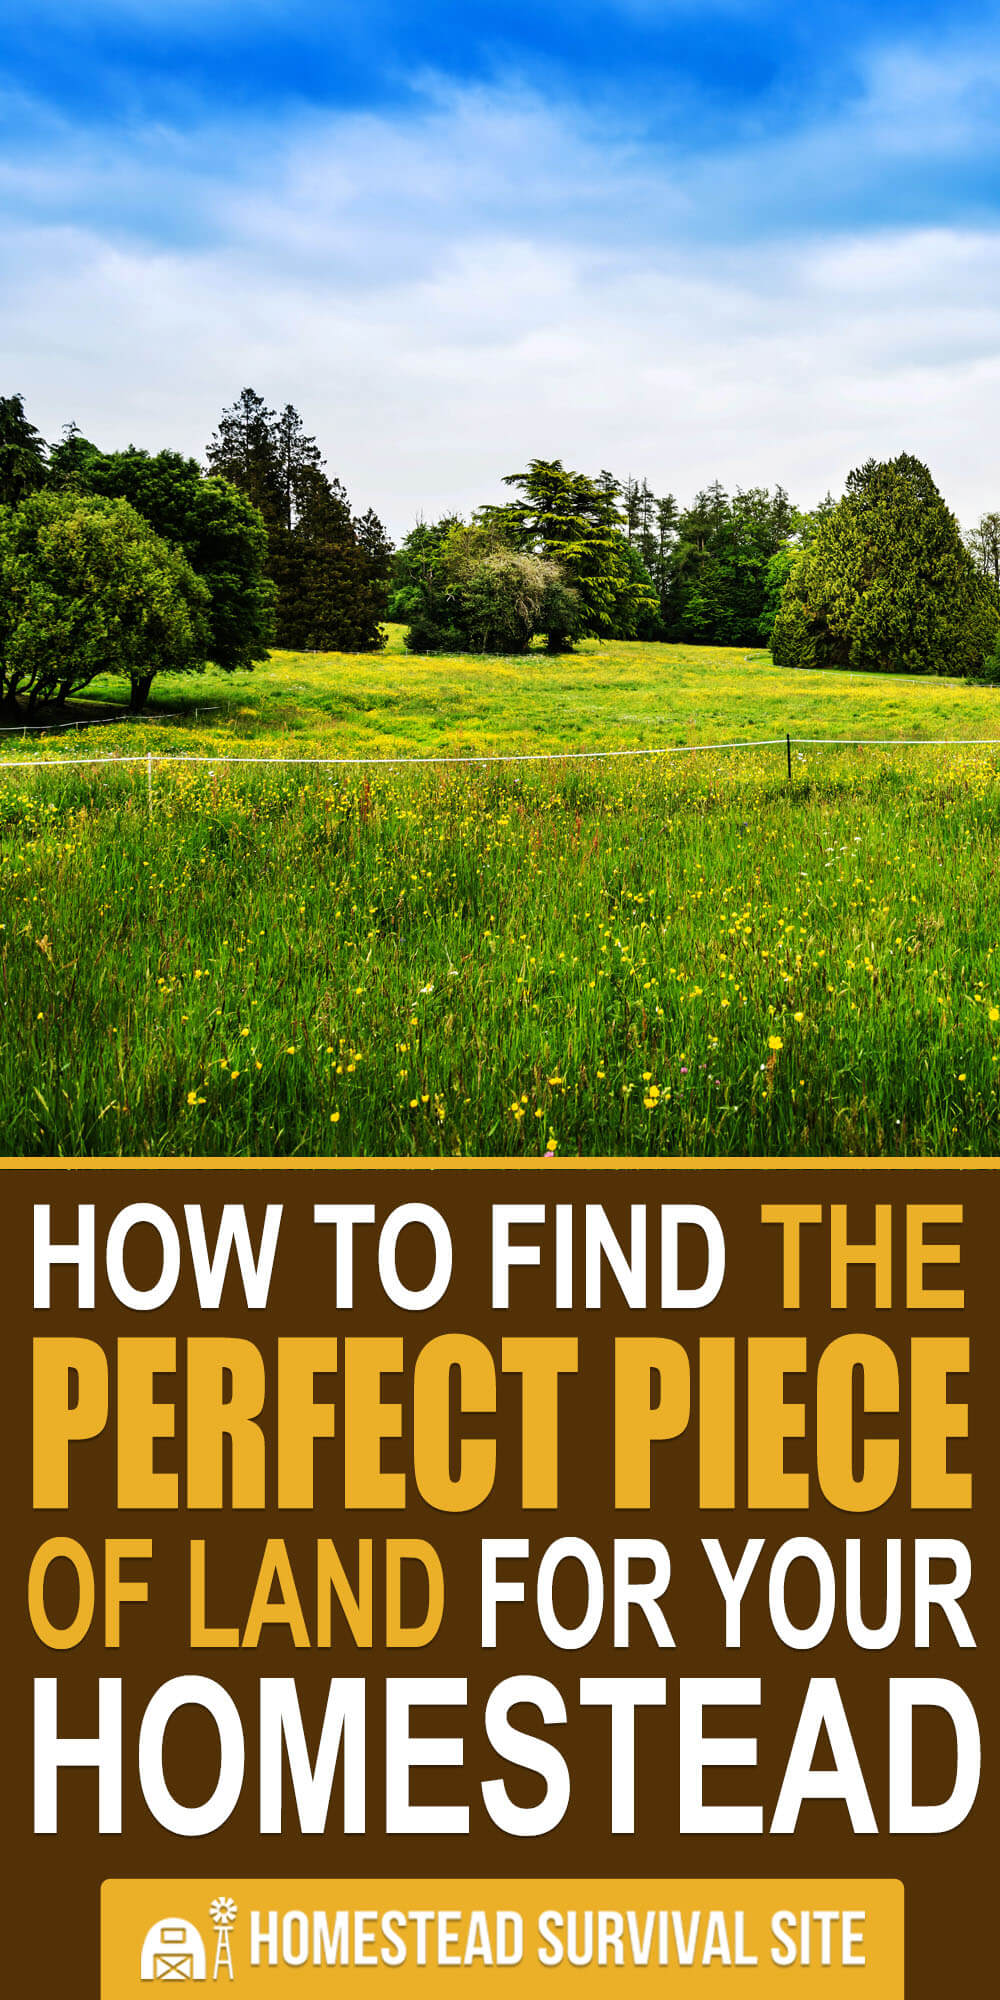 How to Find the Perfect Piece of Land for Your Homestead